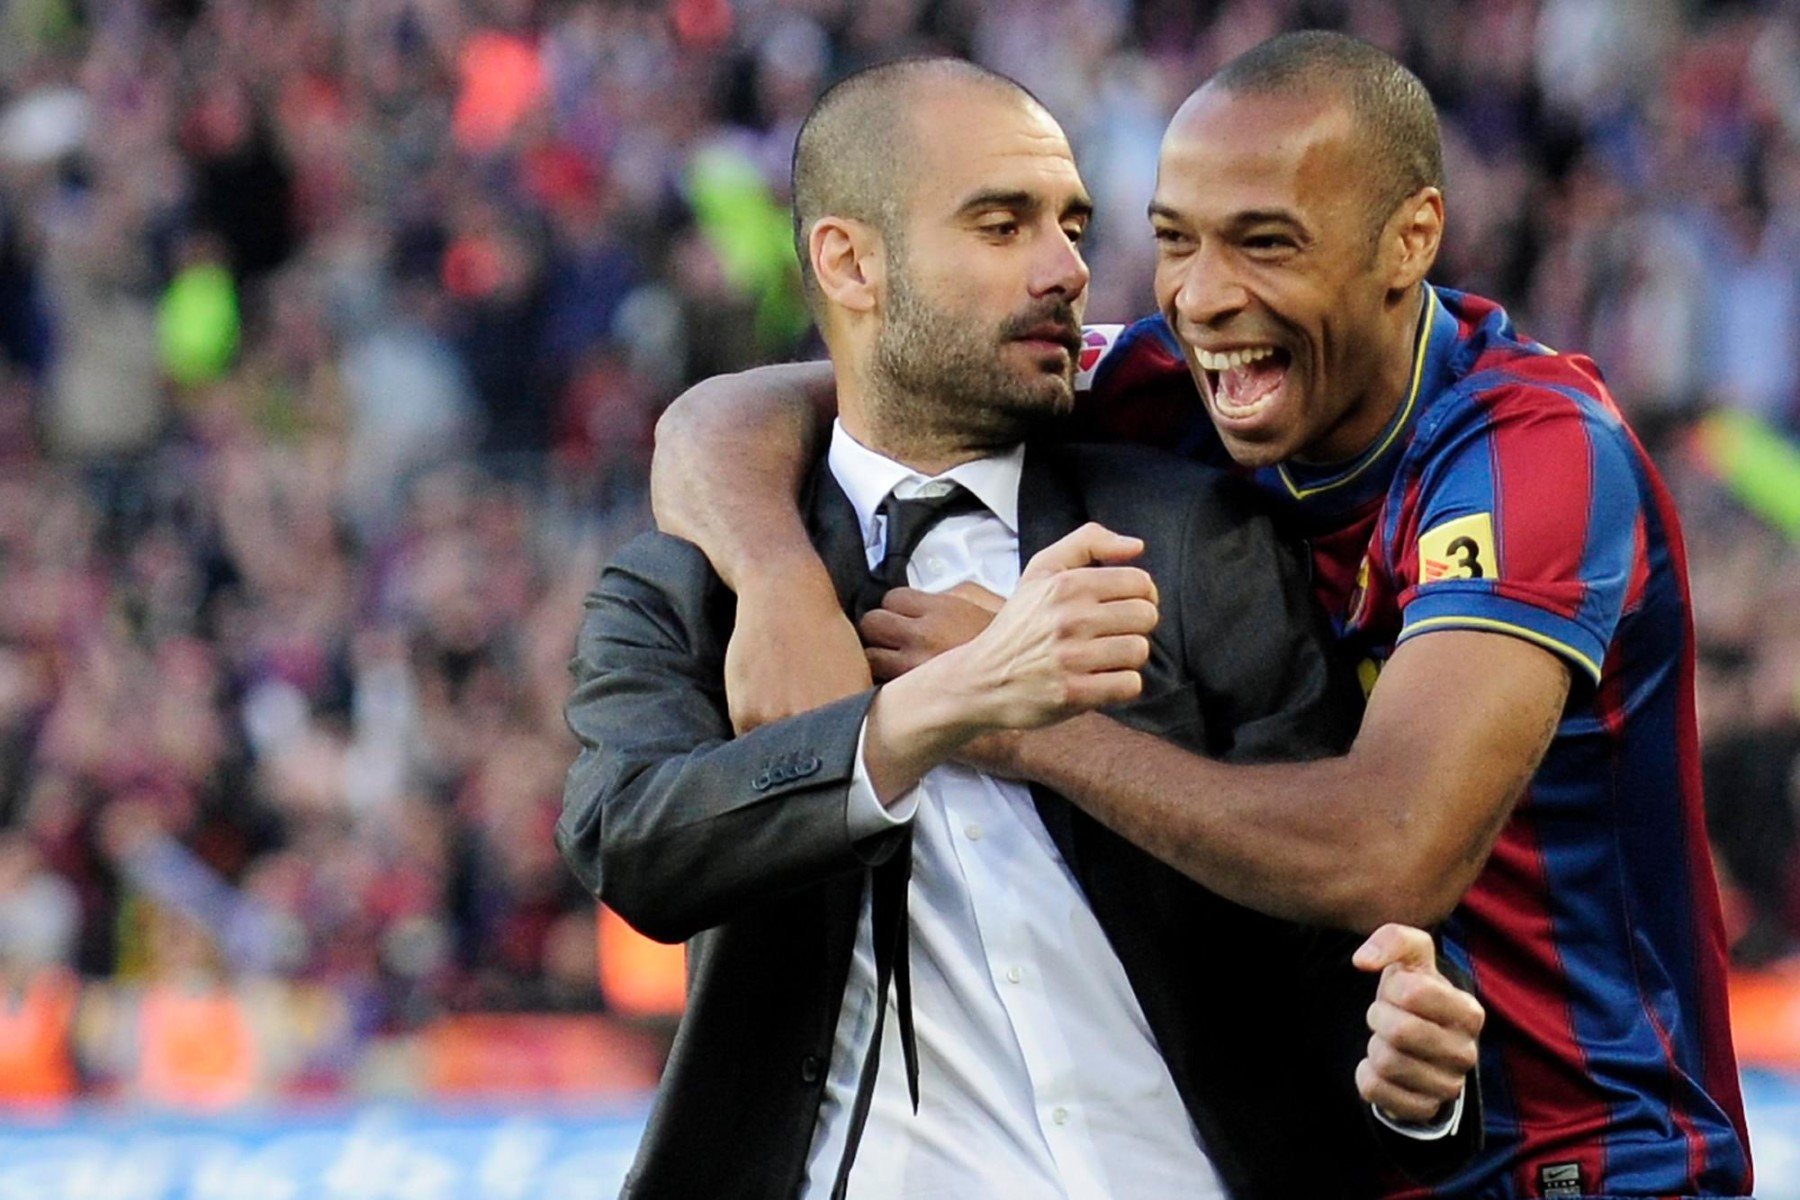 Thierry Henry won the Champions League with Barcelona